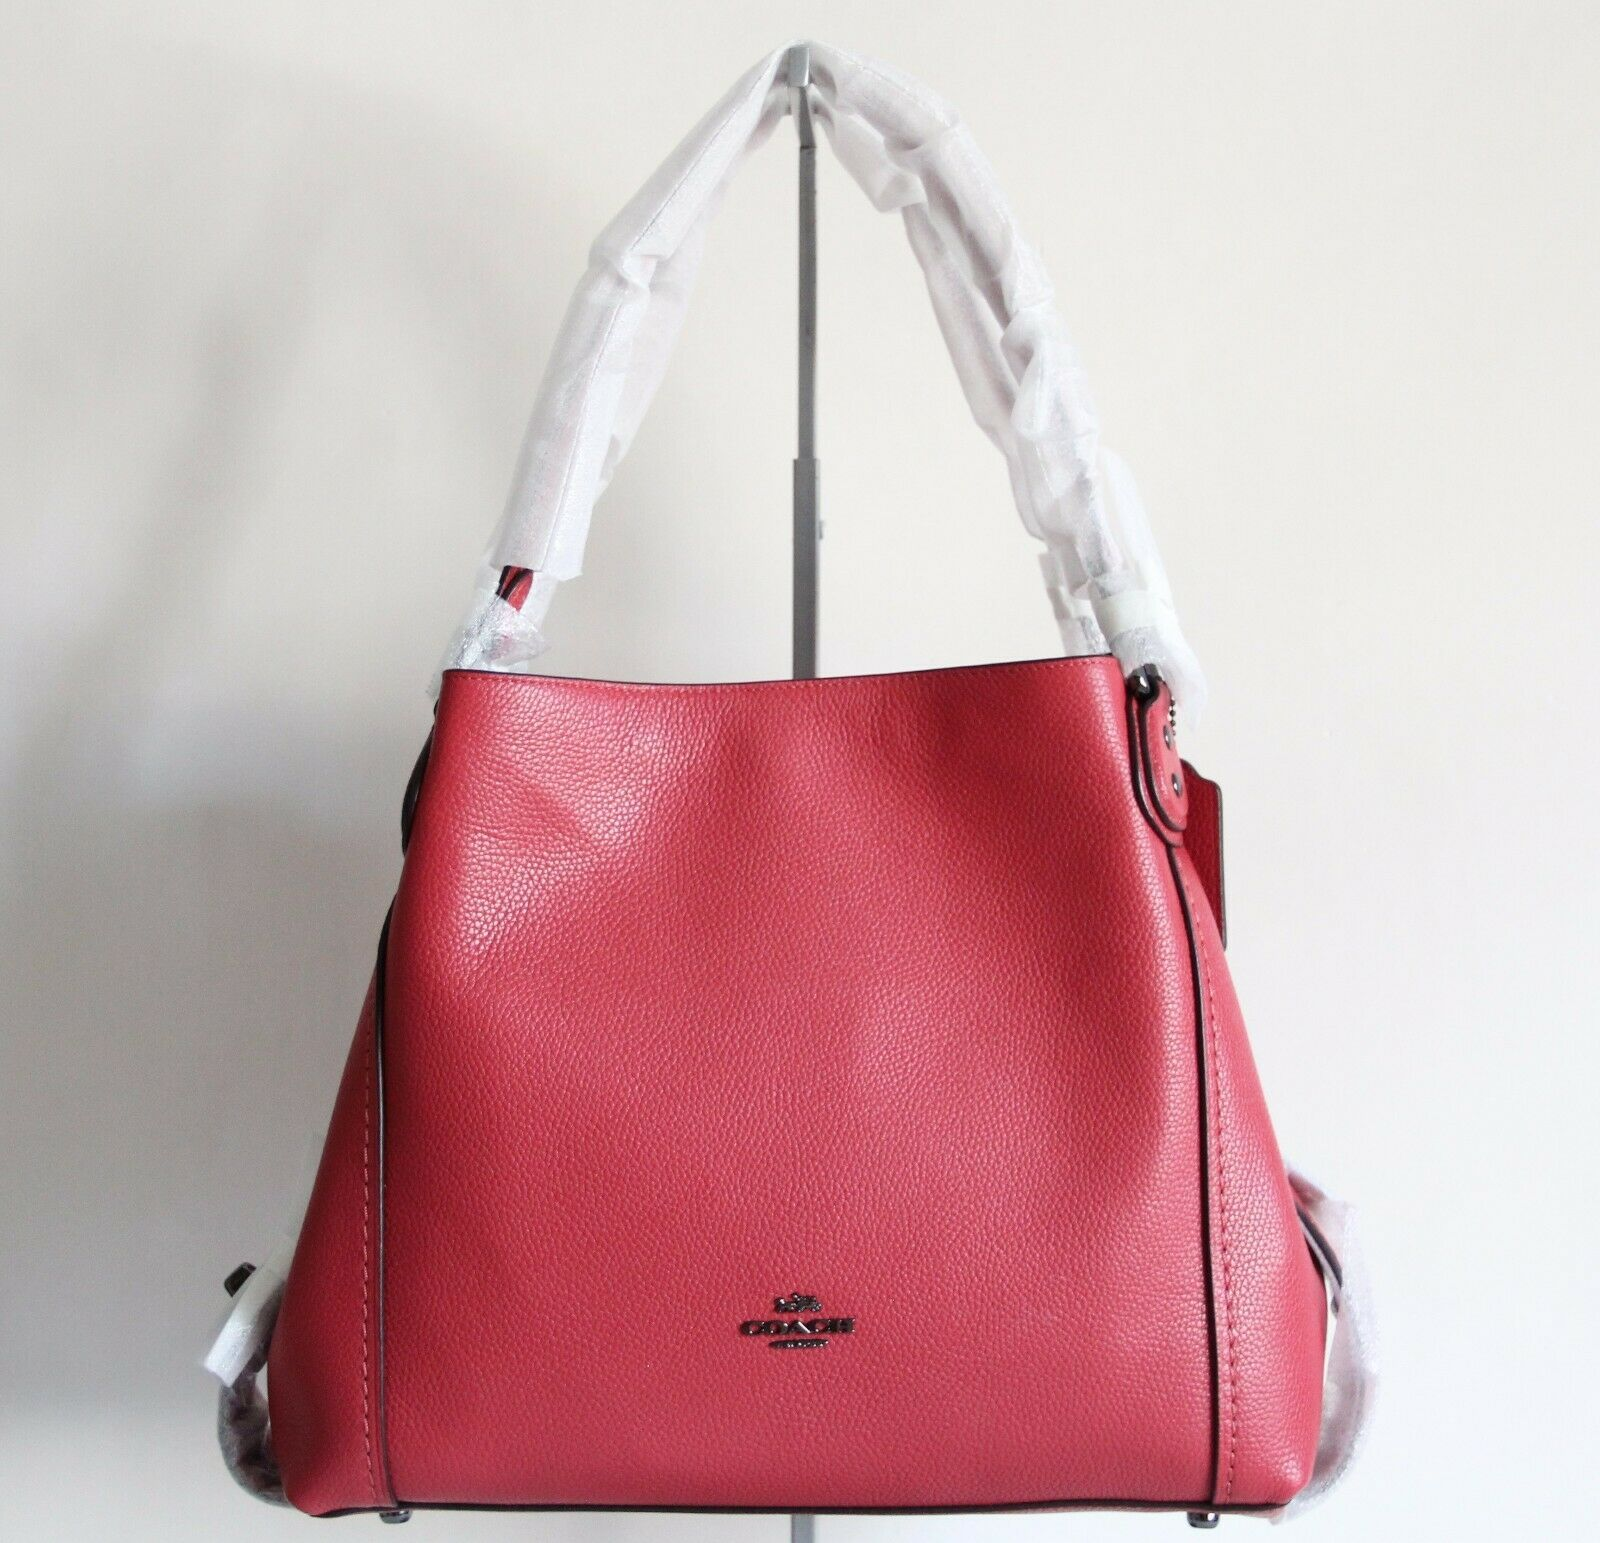 e911c6ad4d Nwt Coach Edie 31 Leather Shoulder Bag and 23 similar items. 57